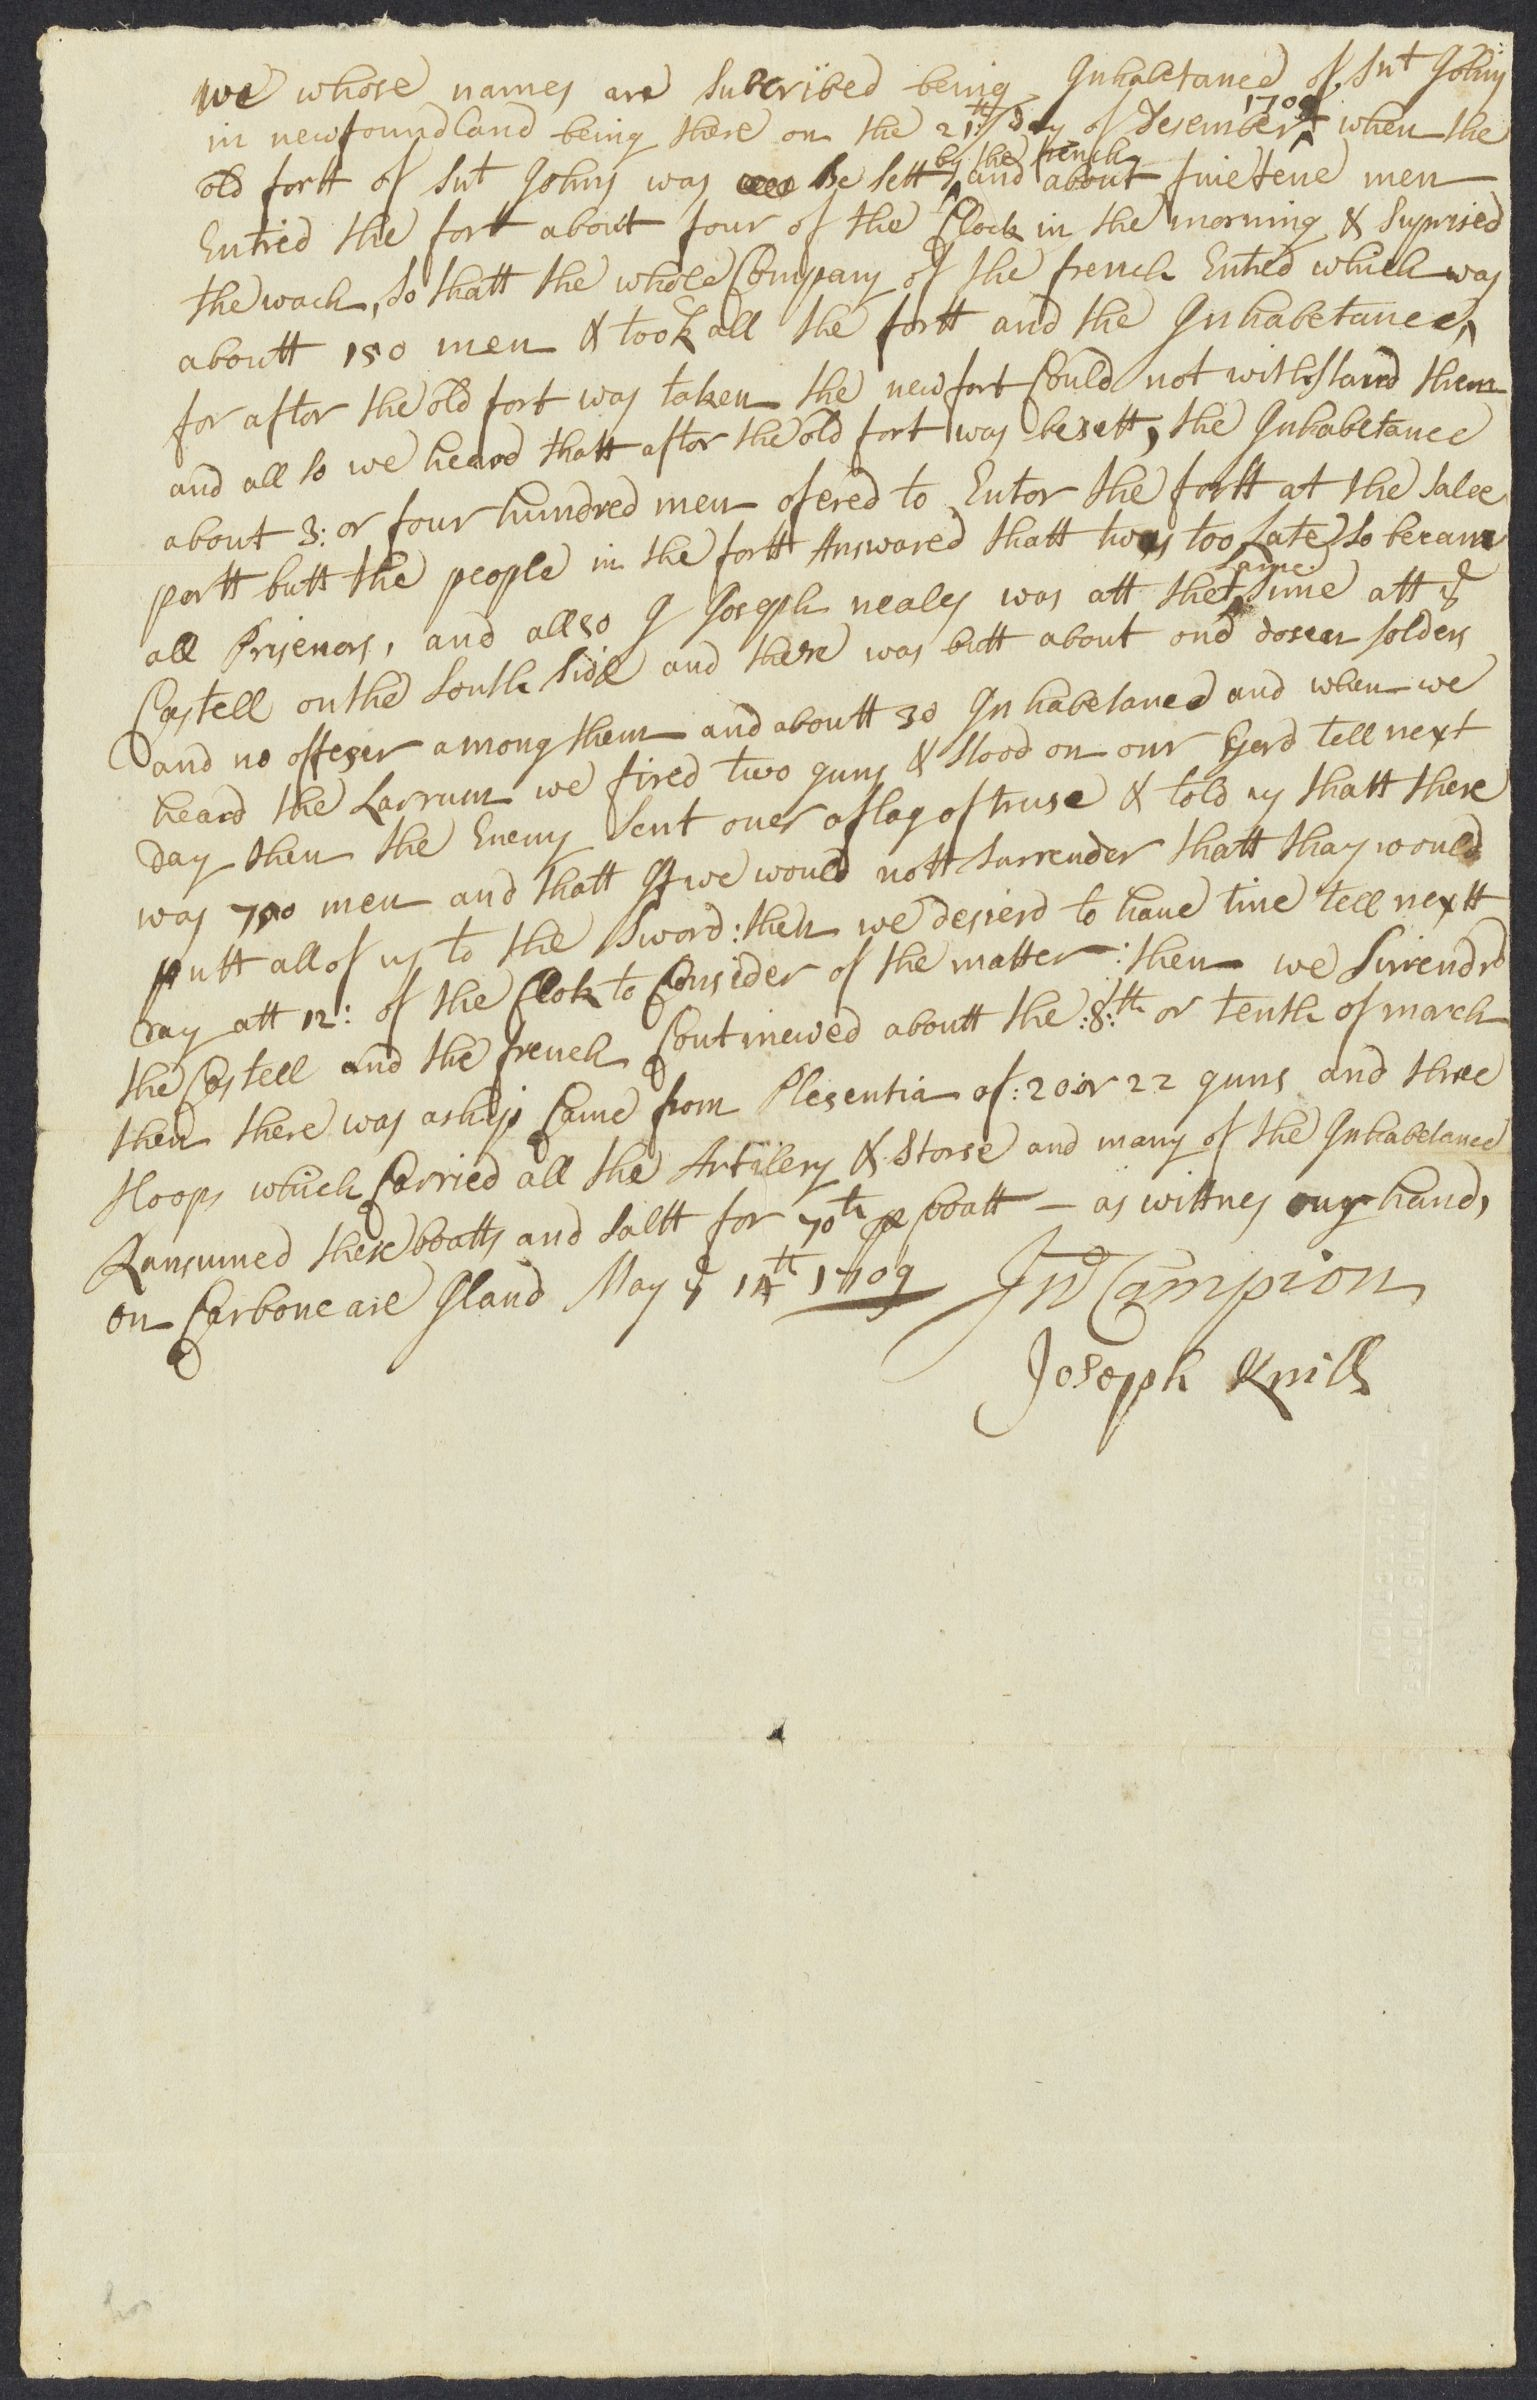 An  account of the capture of St. Johns by the French : manuscript, 1709 May 14